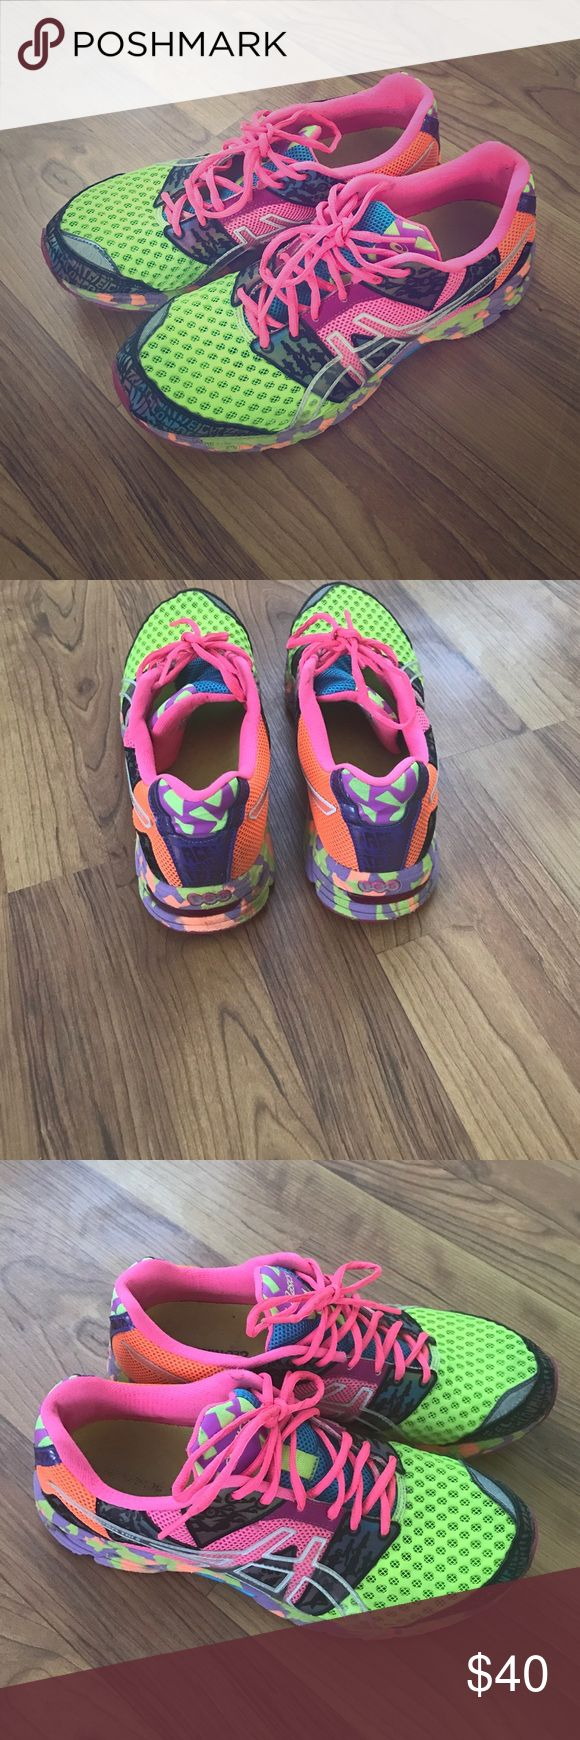 Asics Gel Noosa Tri 8 Dynamic Duomax running shoe Bright and fun. Only worn to run errands. I have a wider foot and these are regular fit so too narrow for me. EUC no rips or tears. Soles look great . Asics Shoes Athletic Shoes